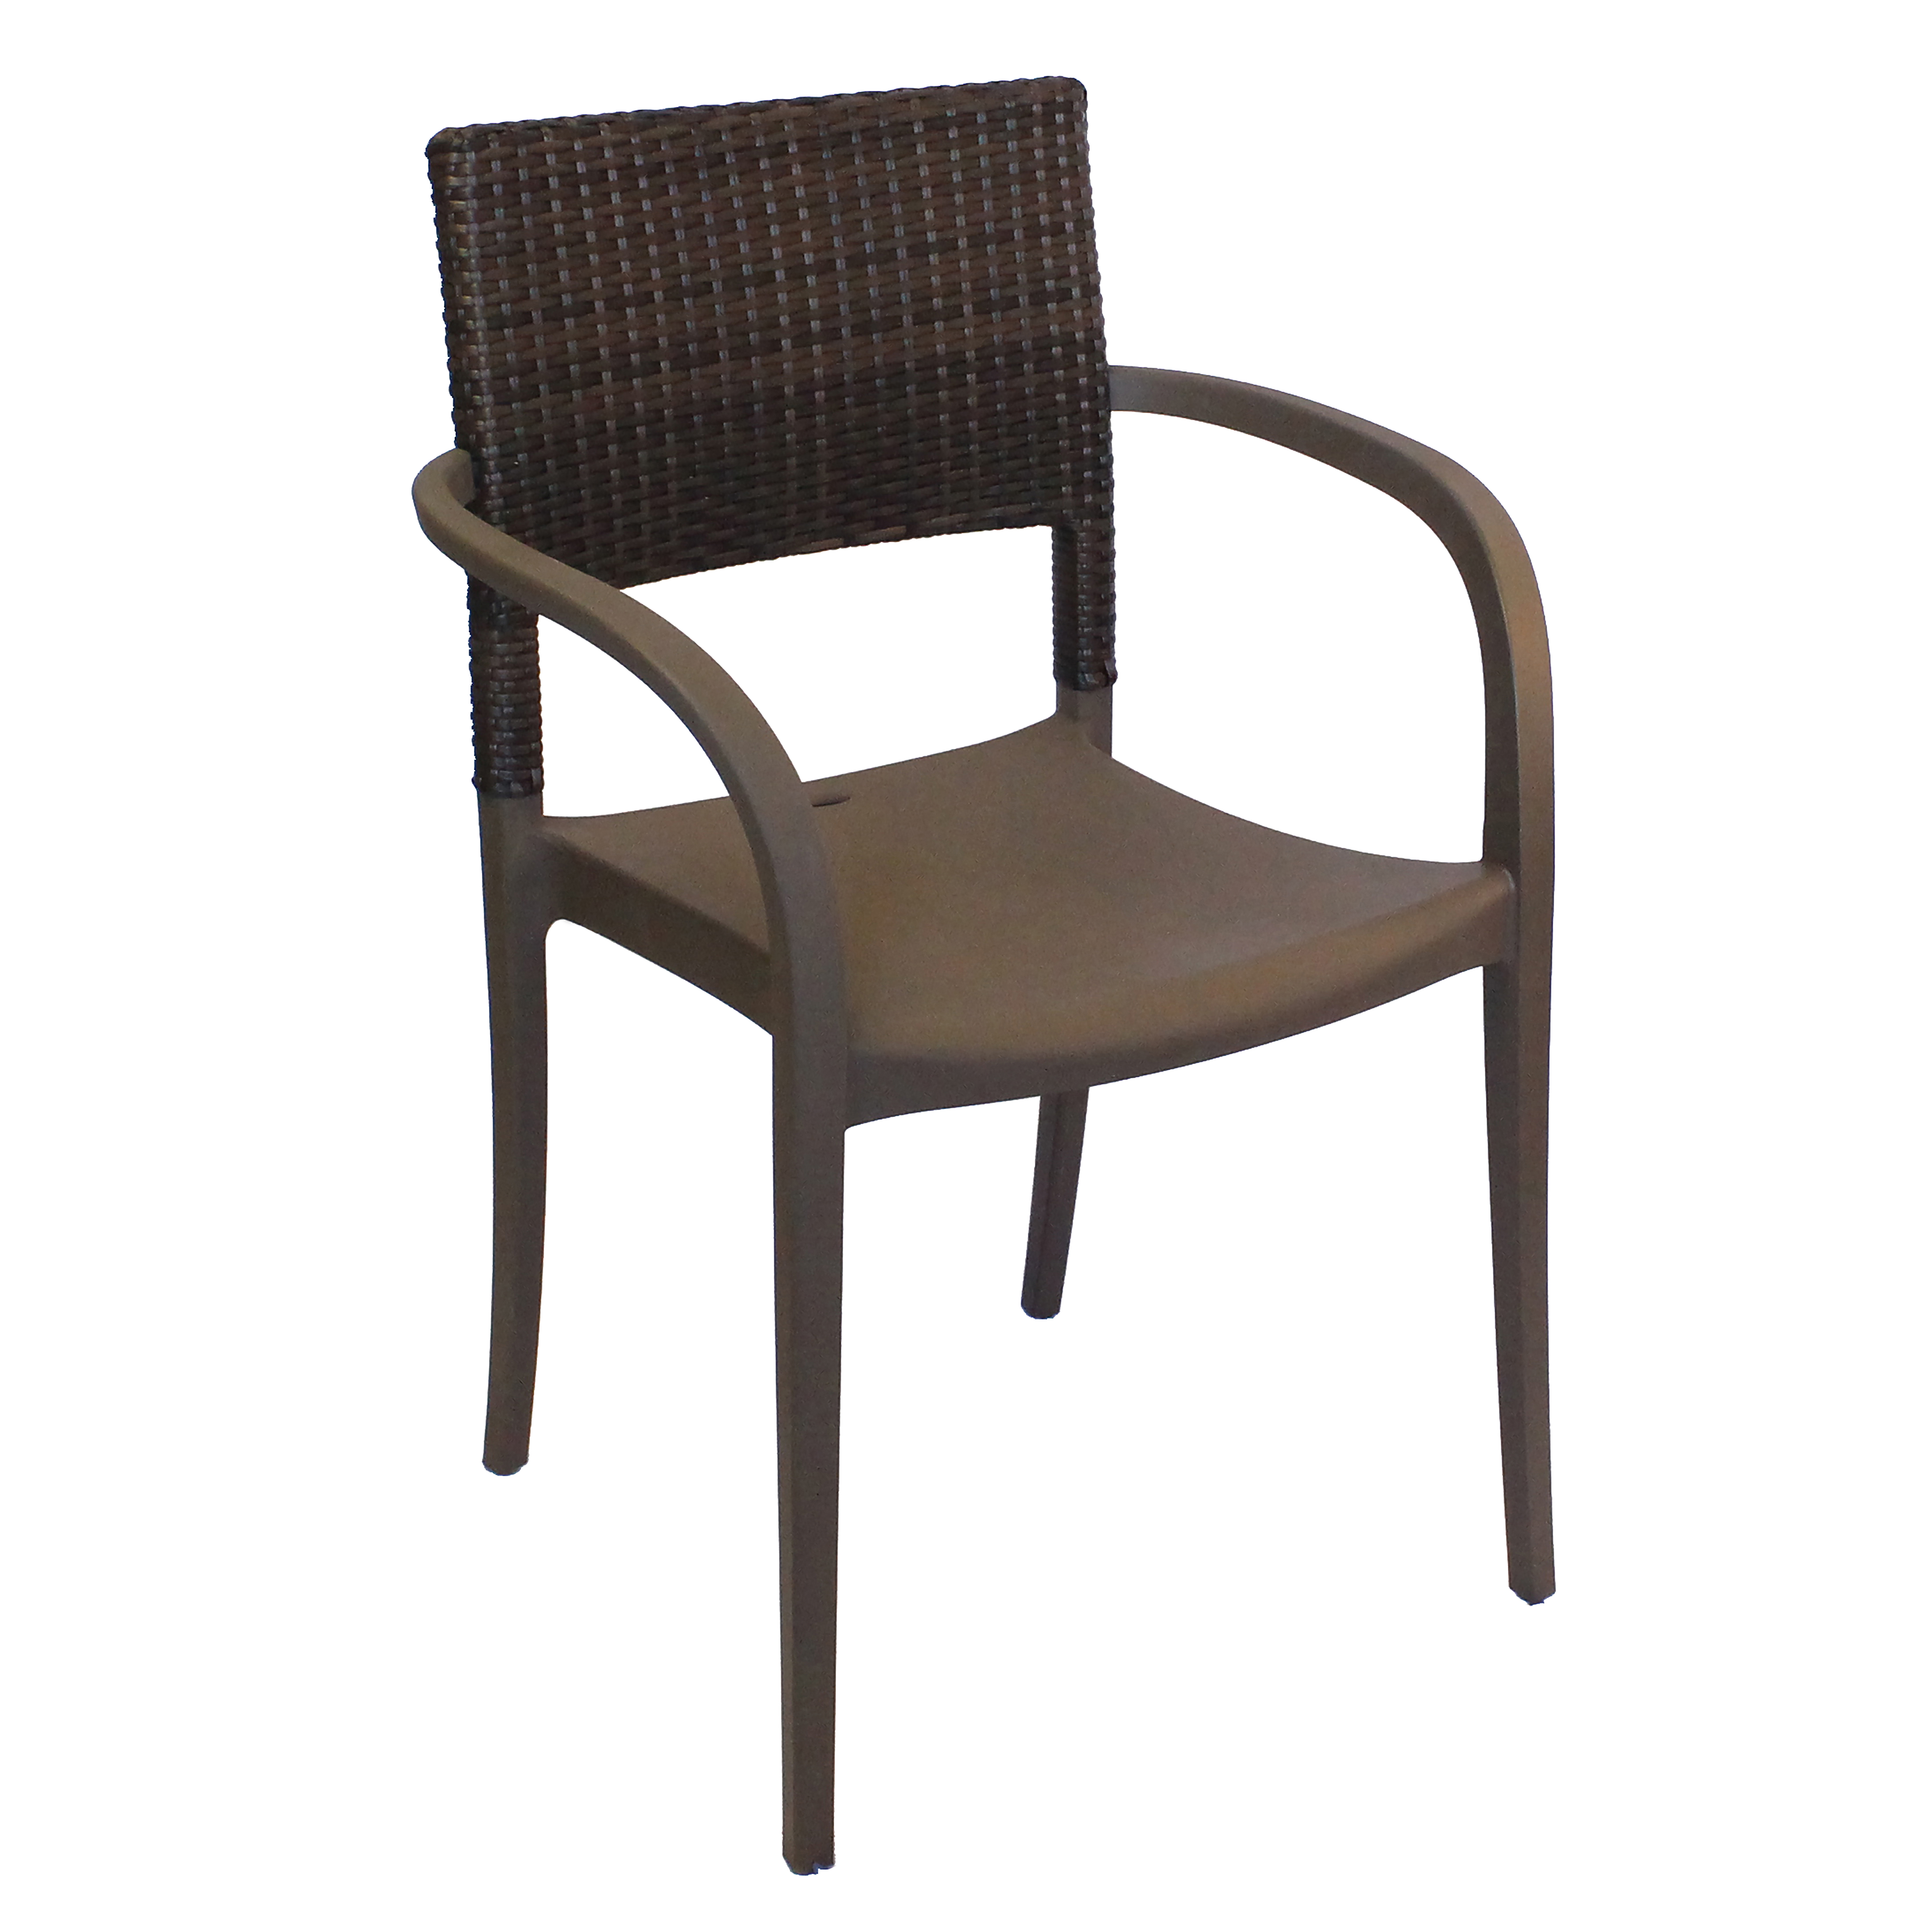 Grosfillex US926037 chair, armchair, stacking, outdoor